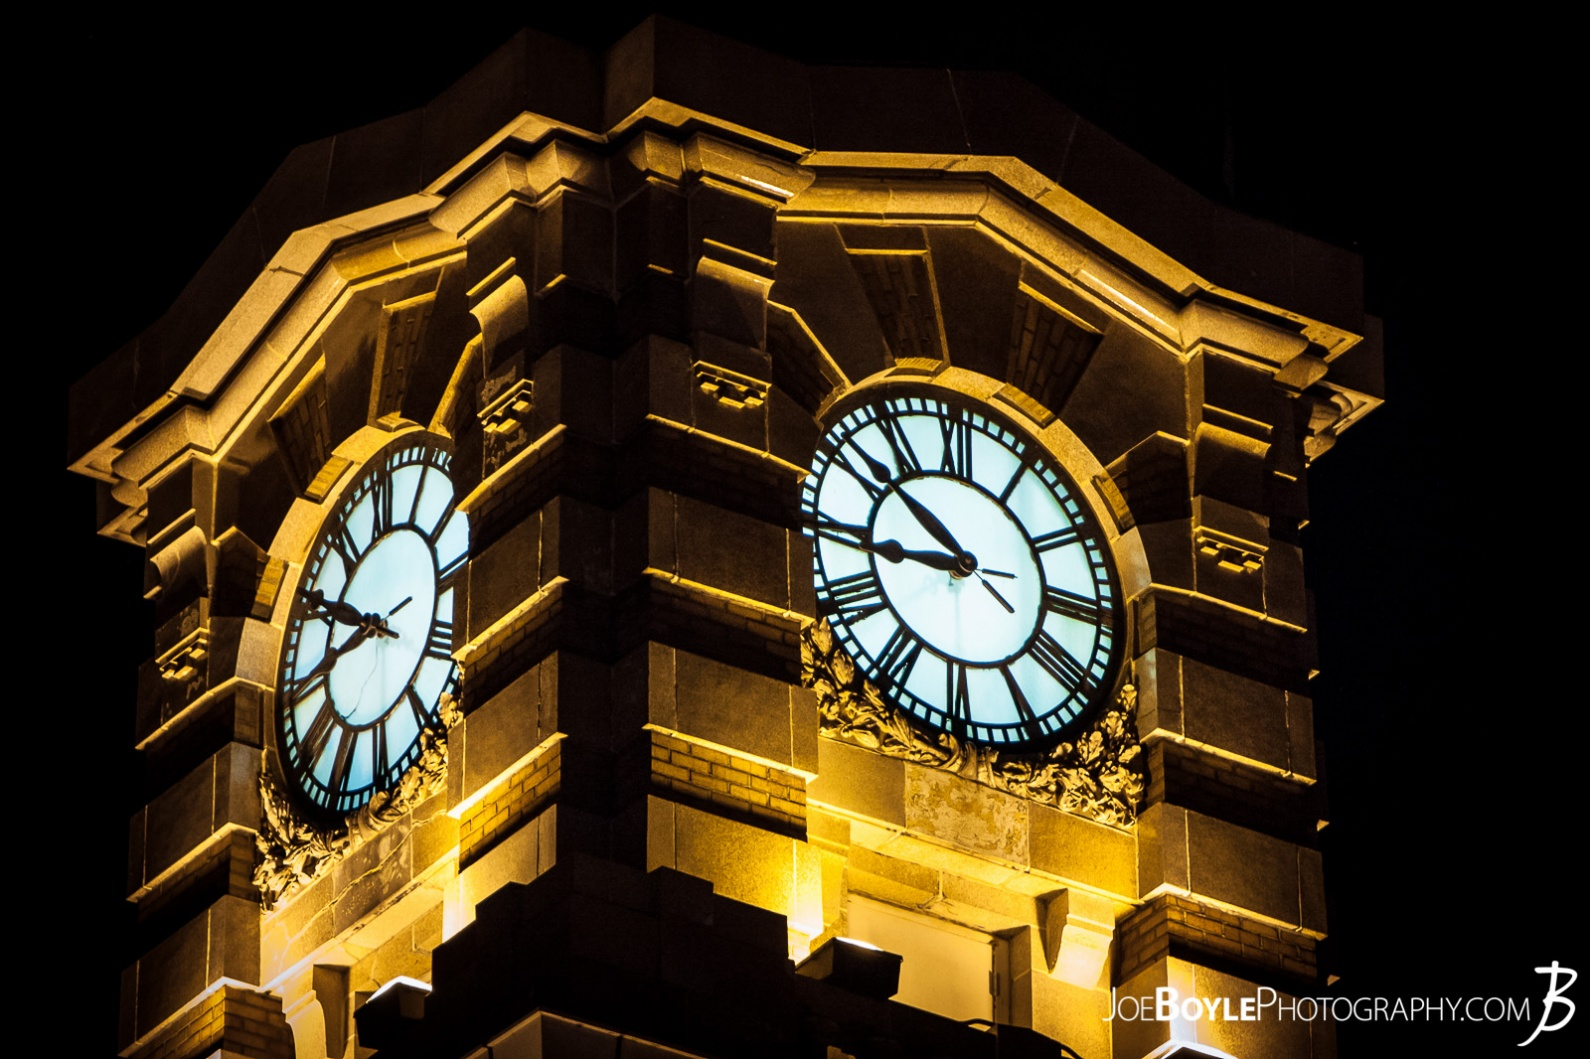 westside-market-clock-downtown-cleveland